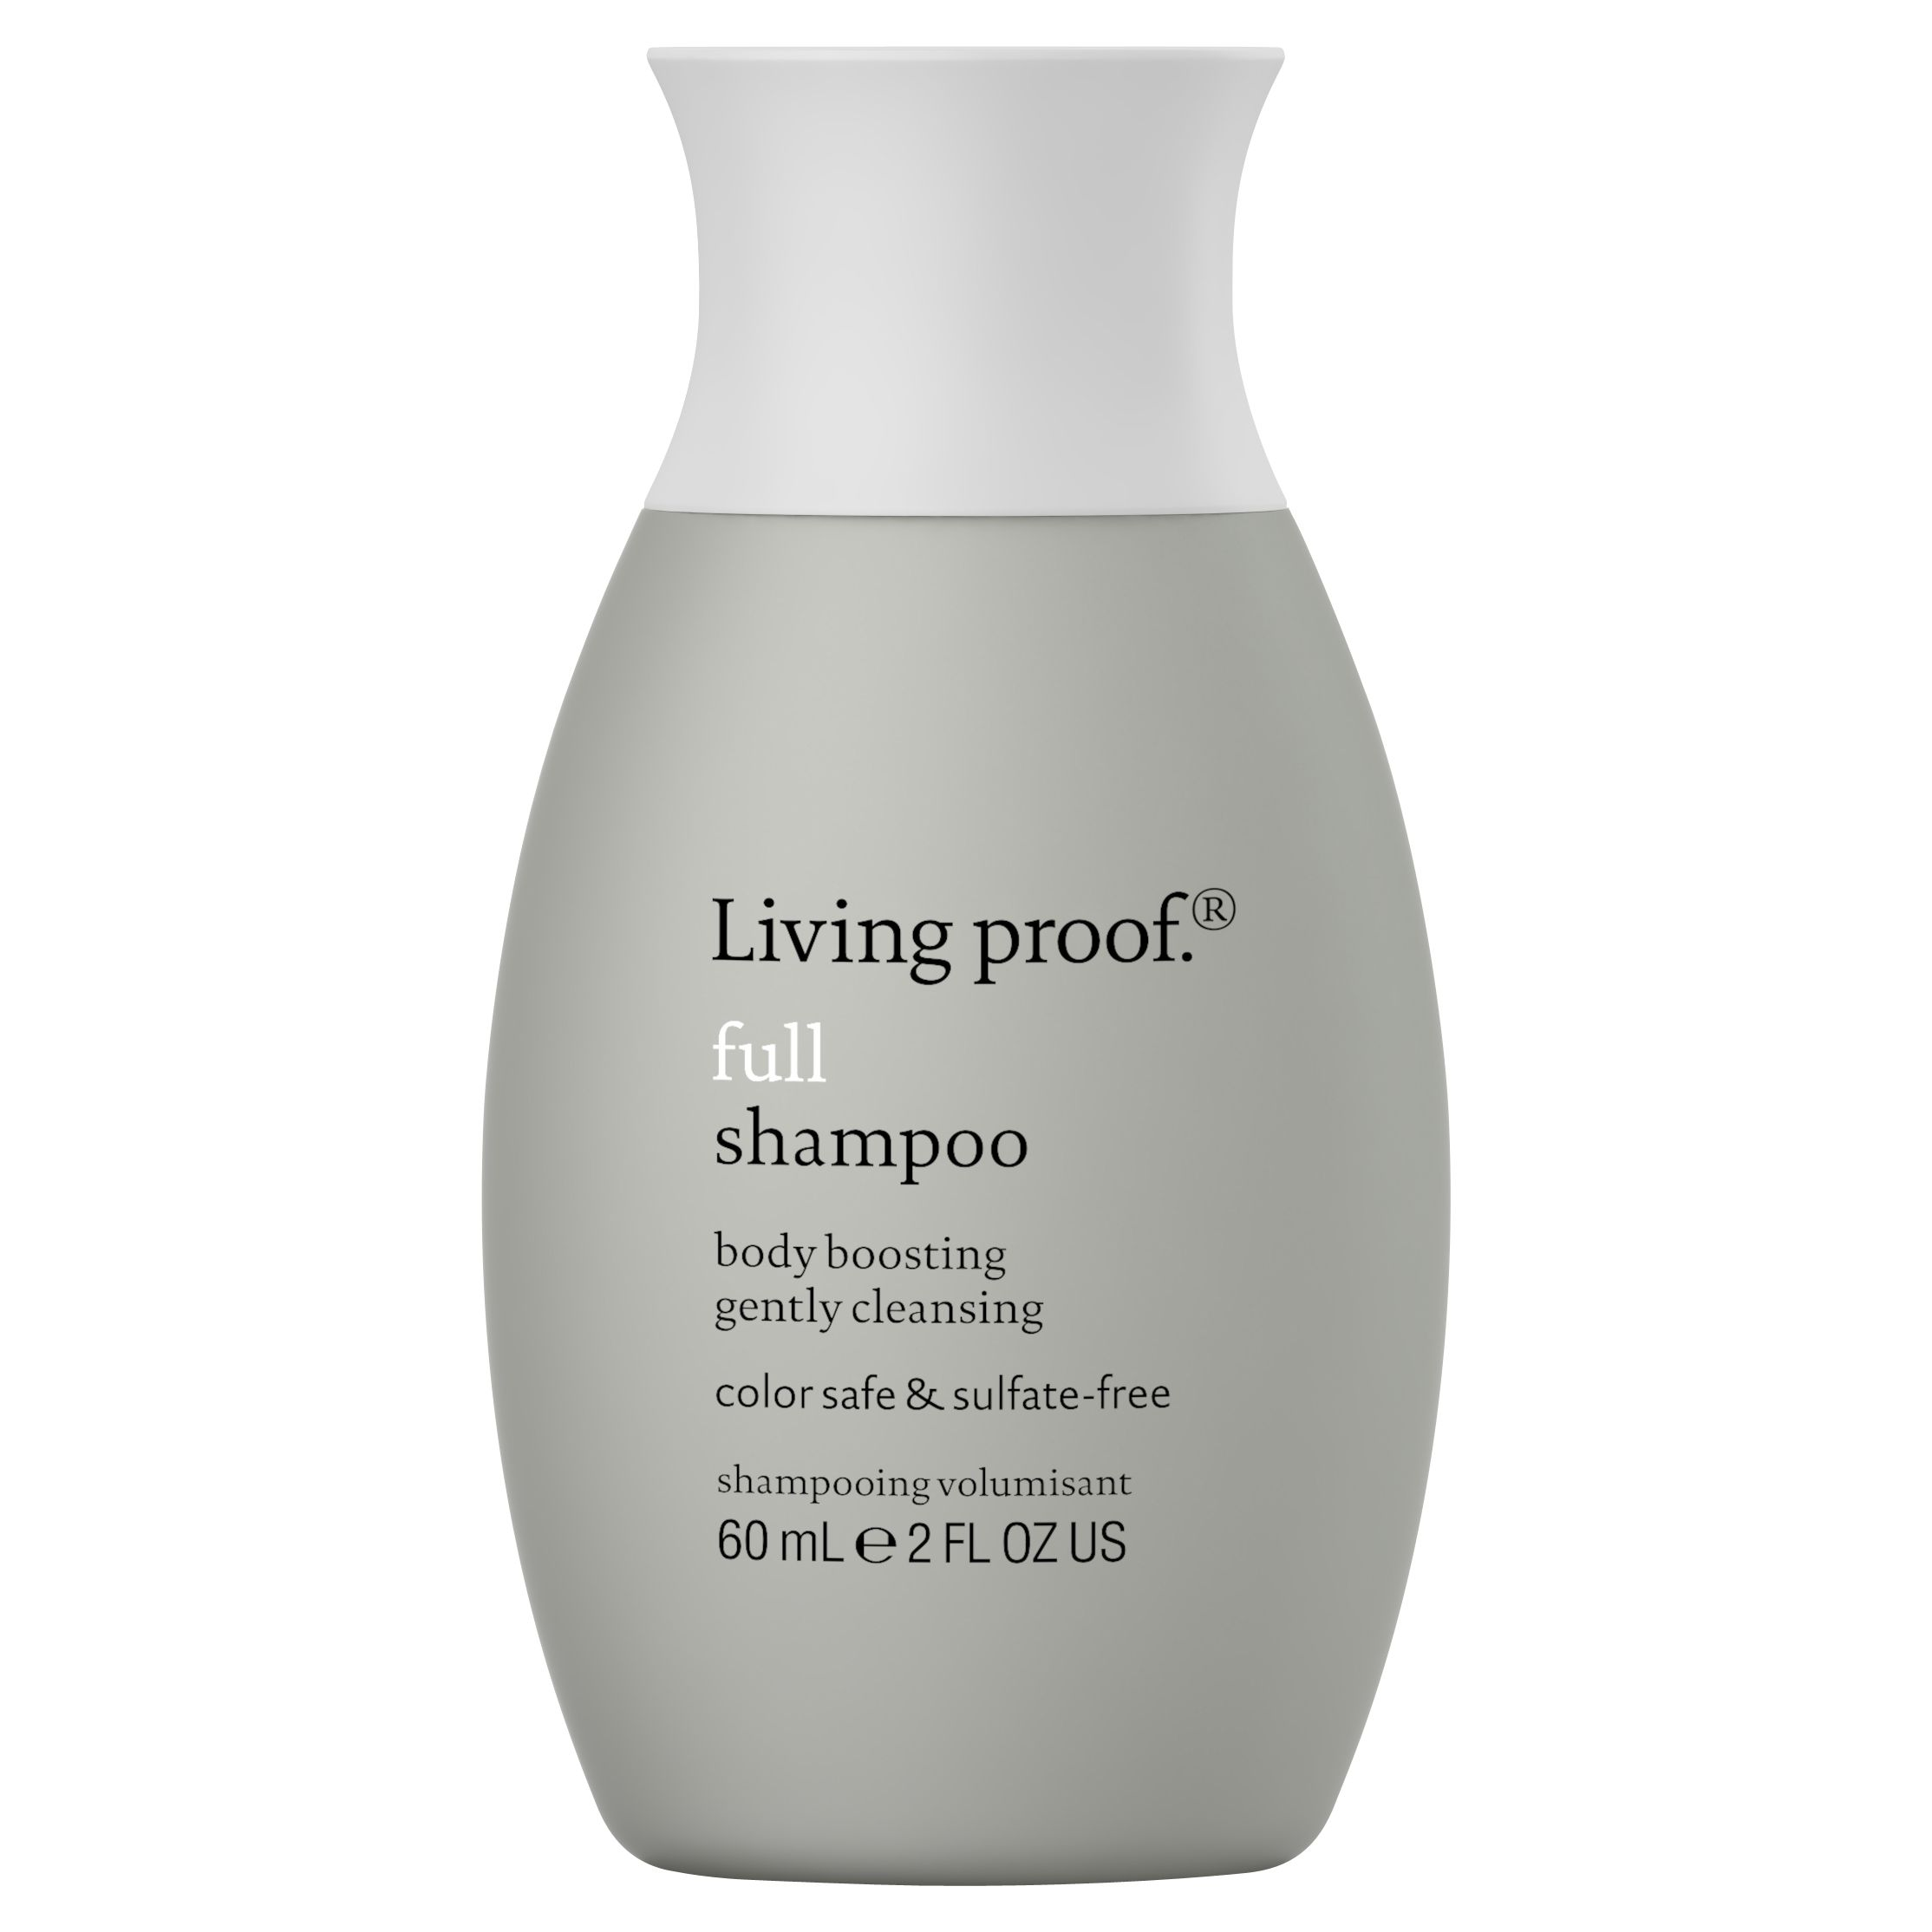 Living proof. full shampoo 60ml